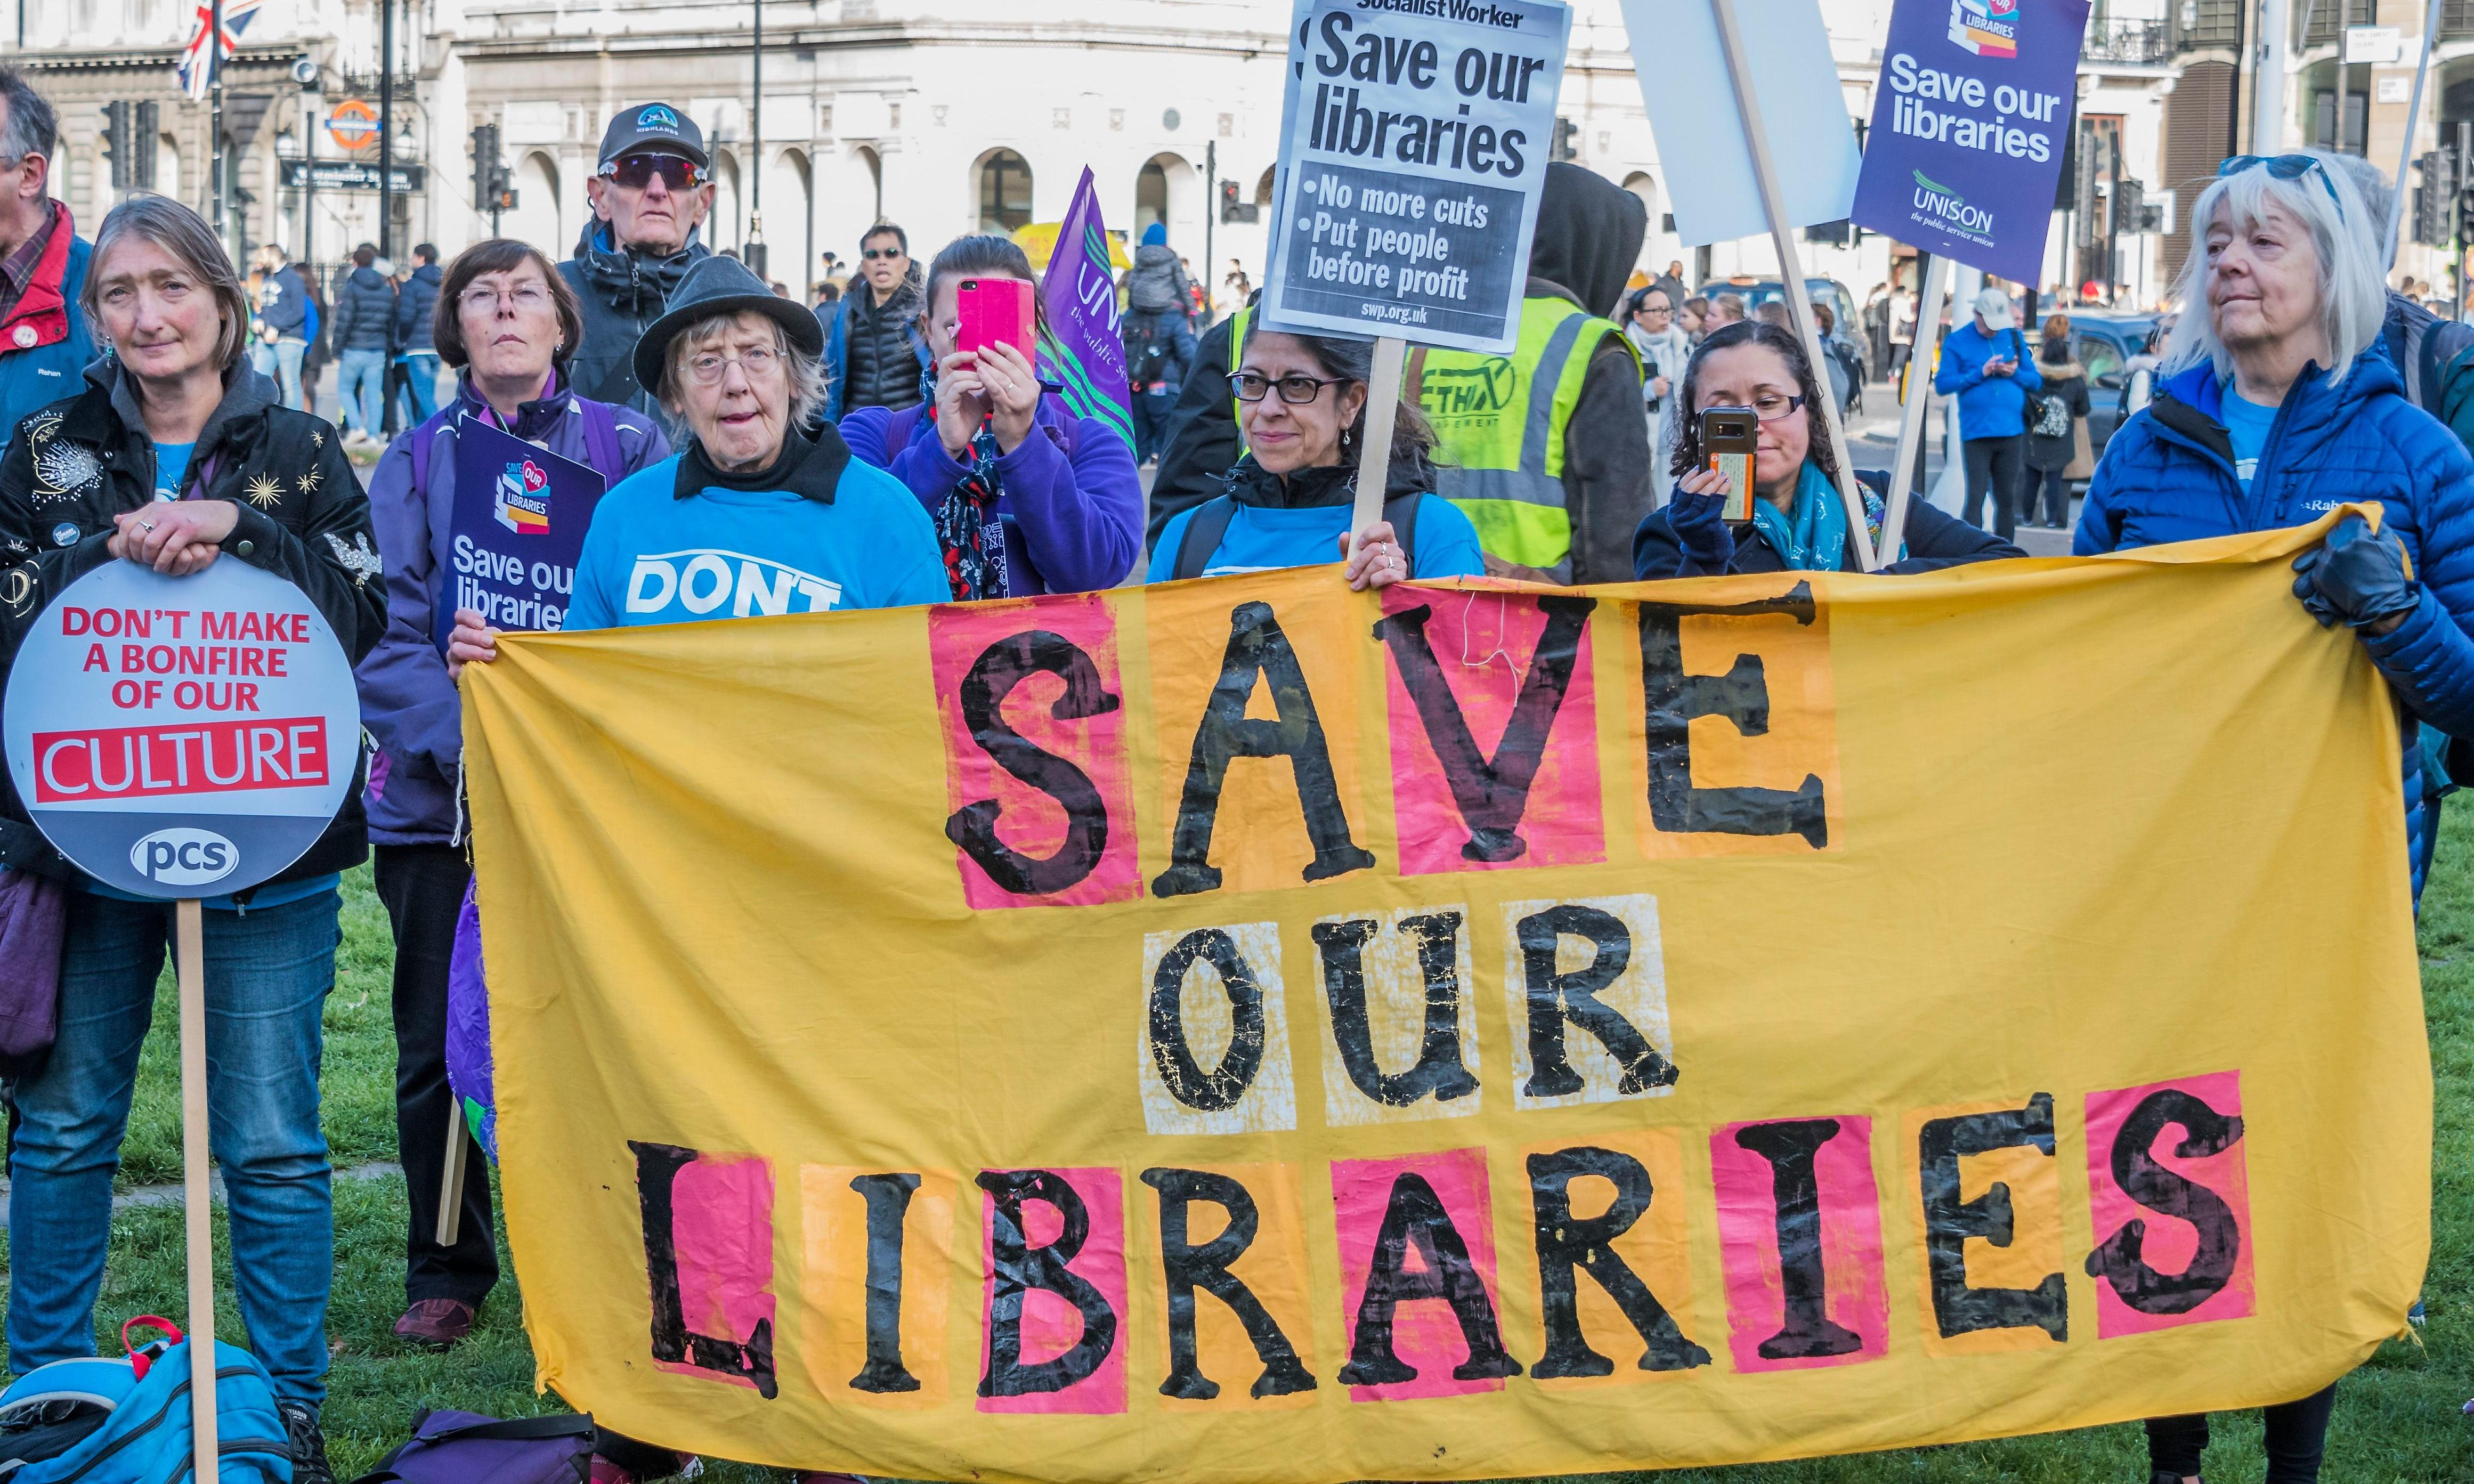 'Hugely disappointing' government response to libraries petition